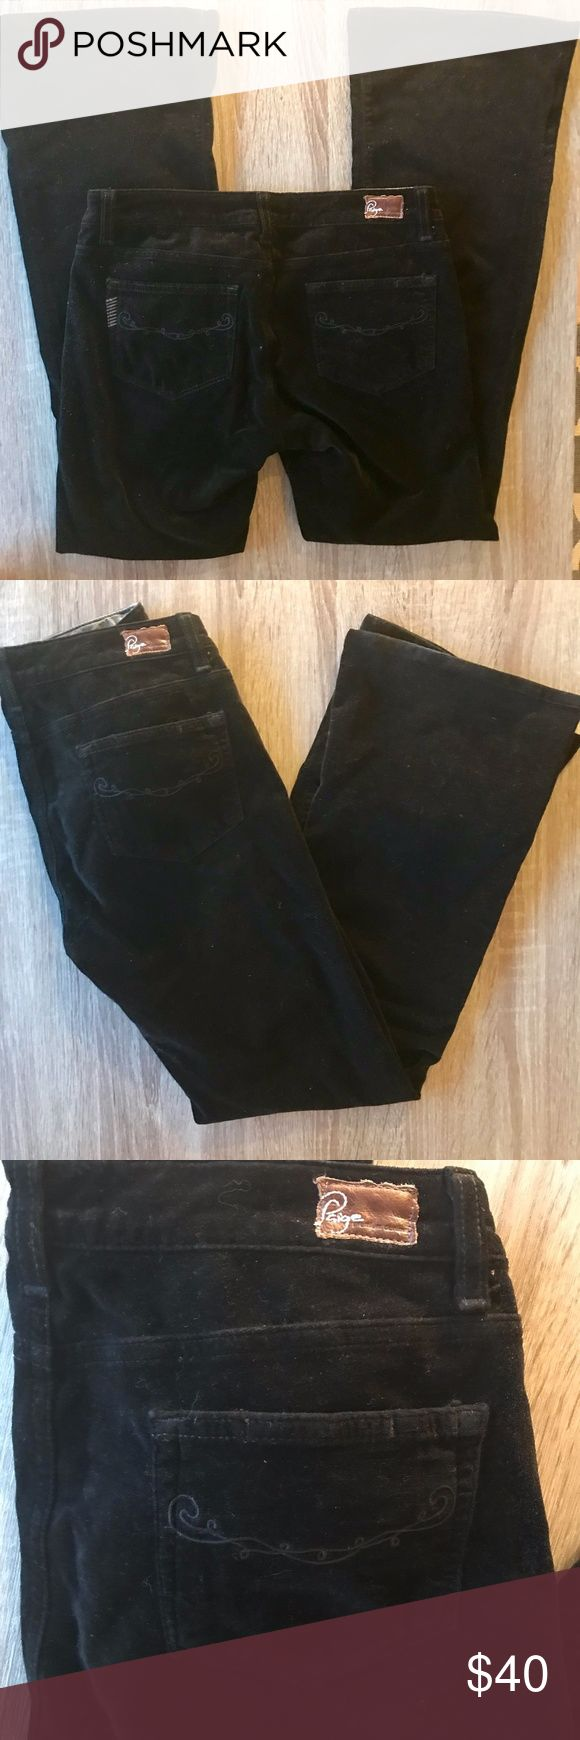 "Paige Hollywood Hills Black Velvet Boot Cut Jeans Black velvet bootcut jeans from Paige Jeans.  These pants have a soft velvet material, zip fly, and five pocket style.  Perfect pants for the winter and holidays.  Excellent used condition.  - Size 28 - Approx. 14.25"" across waist - Approx. 30"" inseam - Approx. 7.5"" front rise - Approx. 9.25"" leg opening Paige Jeans Jeans Boot Cut"